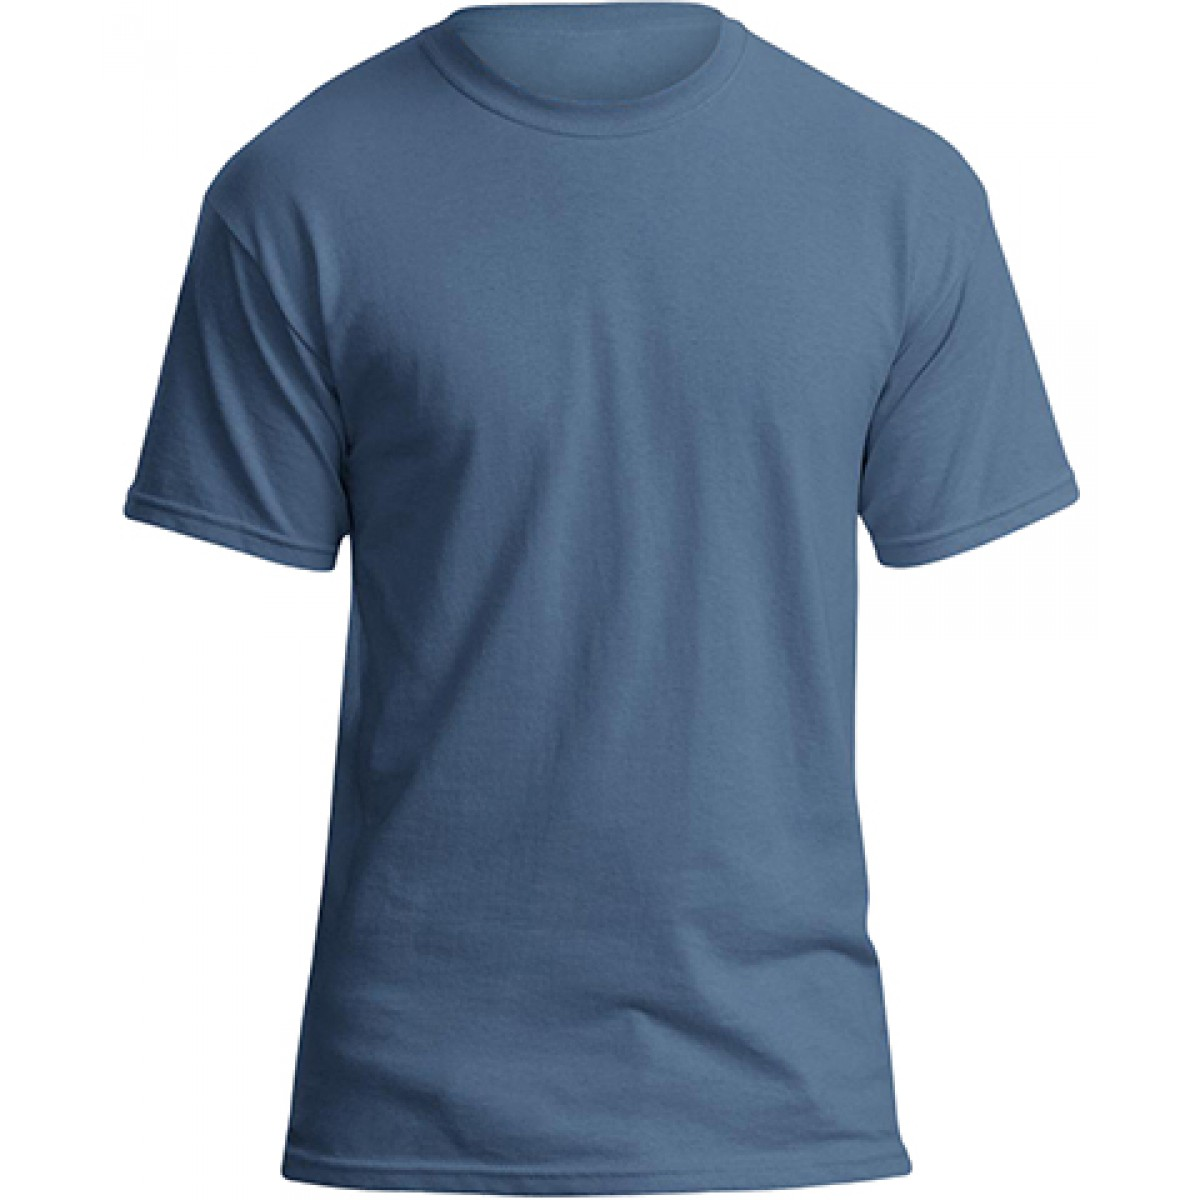 Soft 100% Cotton T-Shirt-Indigo Blue-M